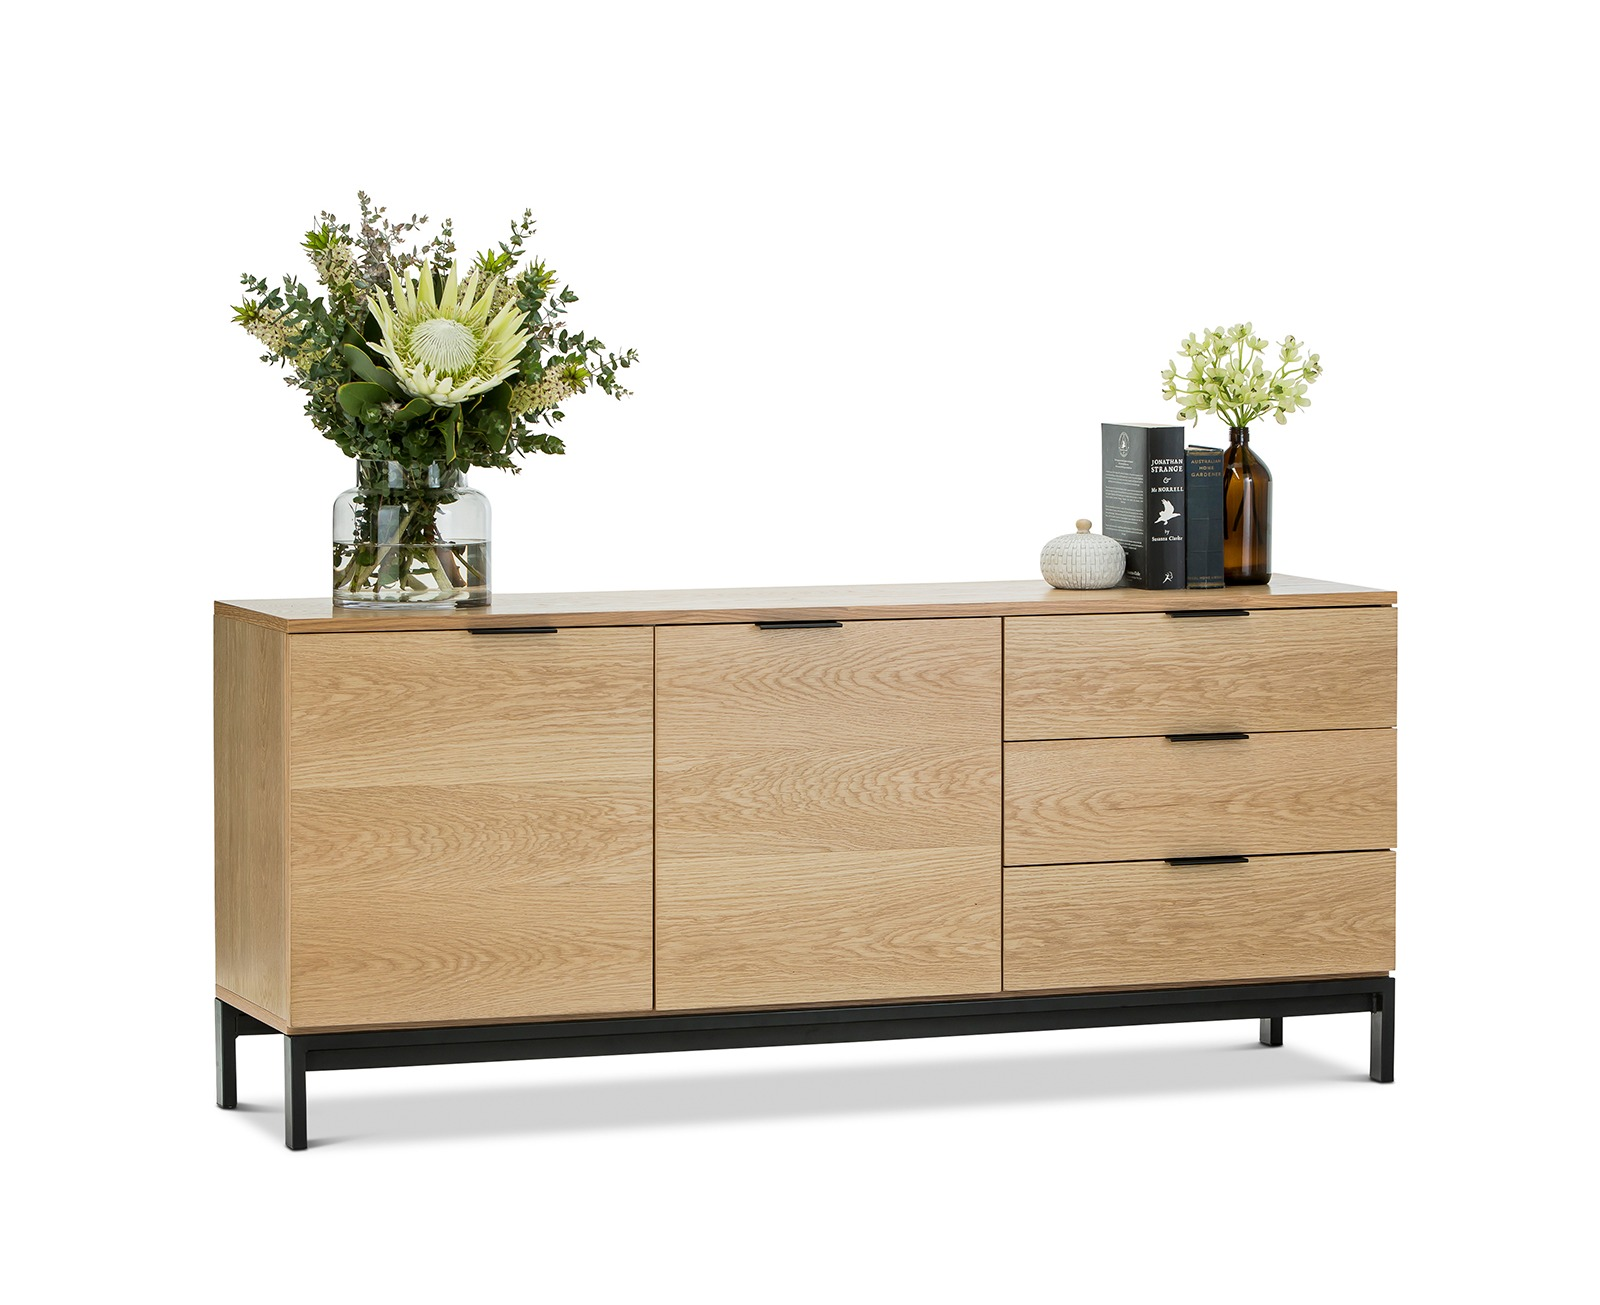 Timber Sideboard Contemporary Scandinavian Oak Veneer Timber 160cm